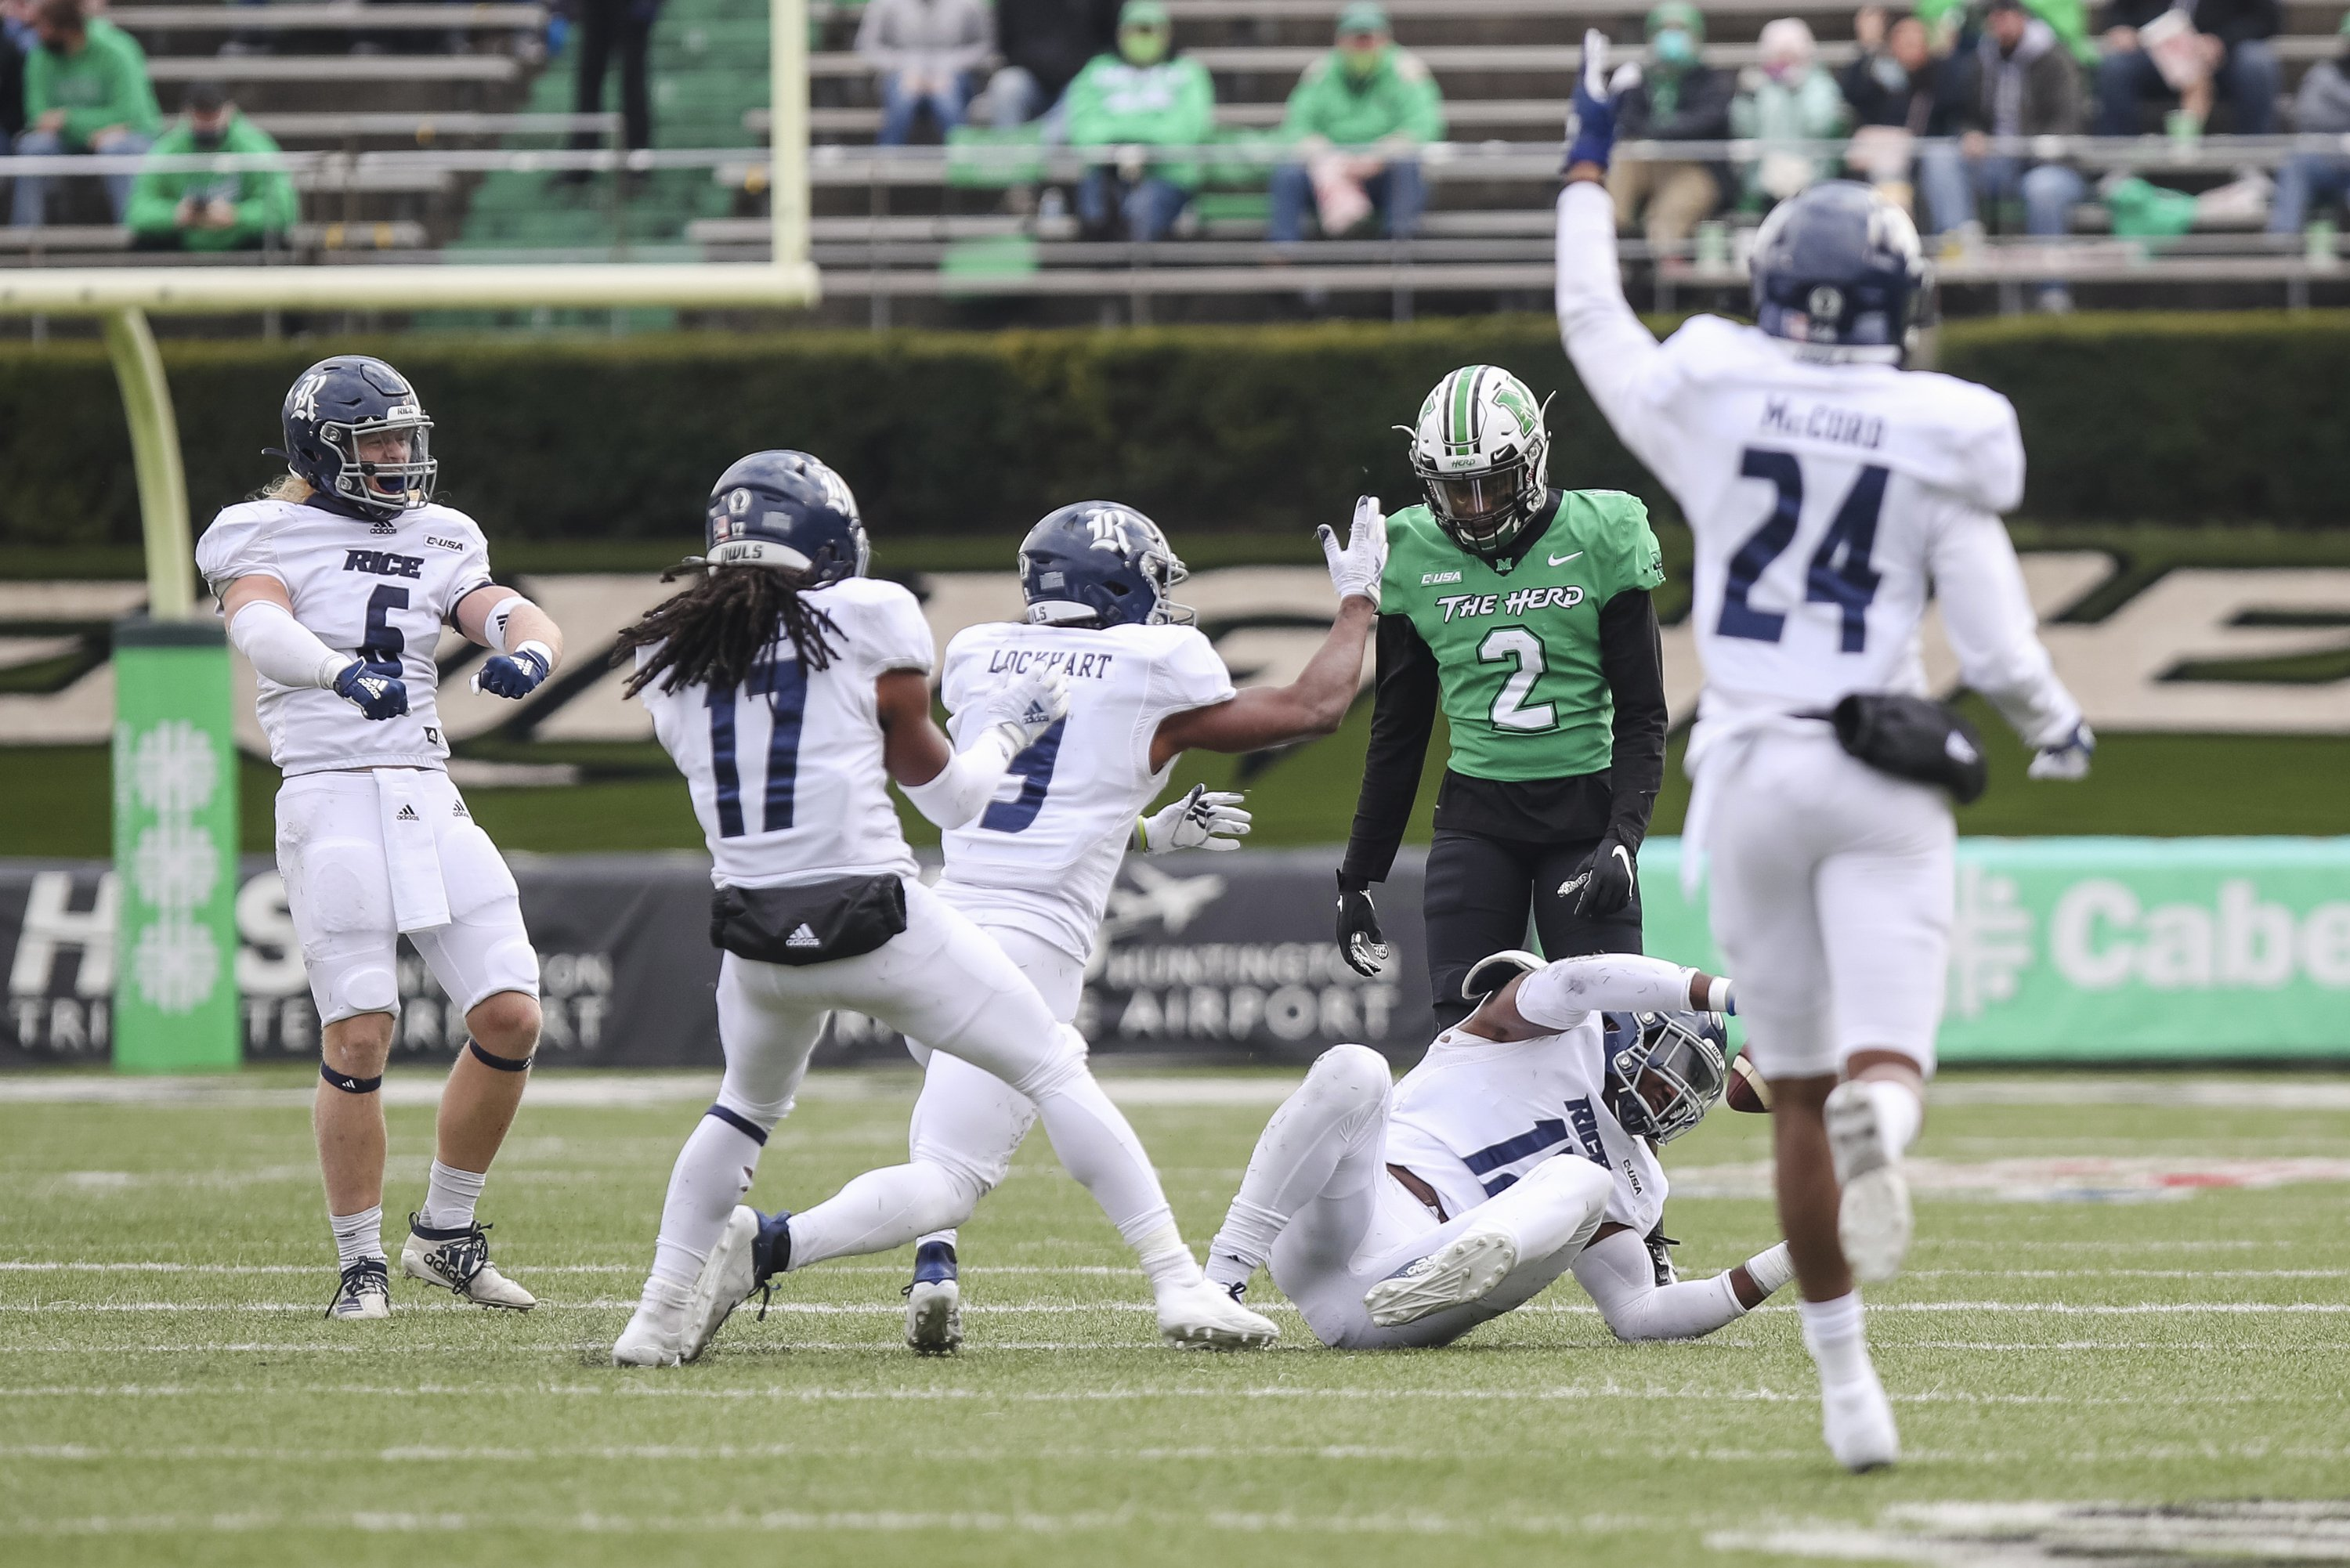 Rice uses 5 interceptions to upset No. 15 Marshall 20-0